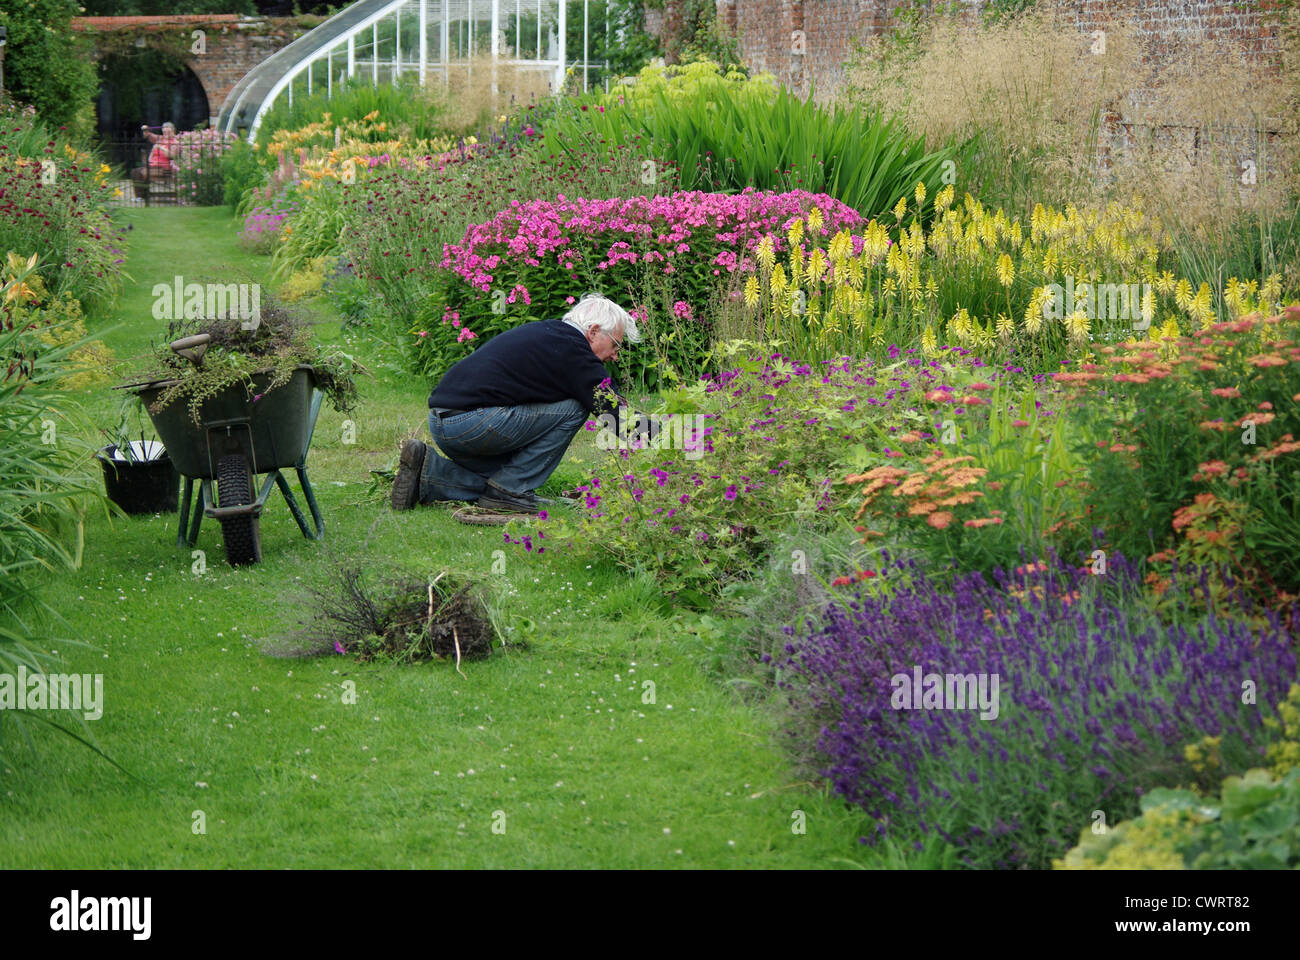 Male Gardener Weeding A Mixed Border In An English Country